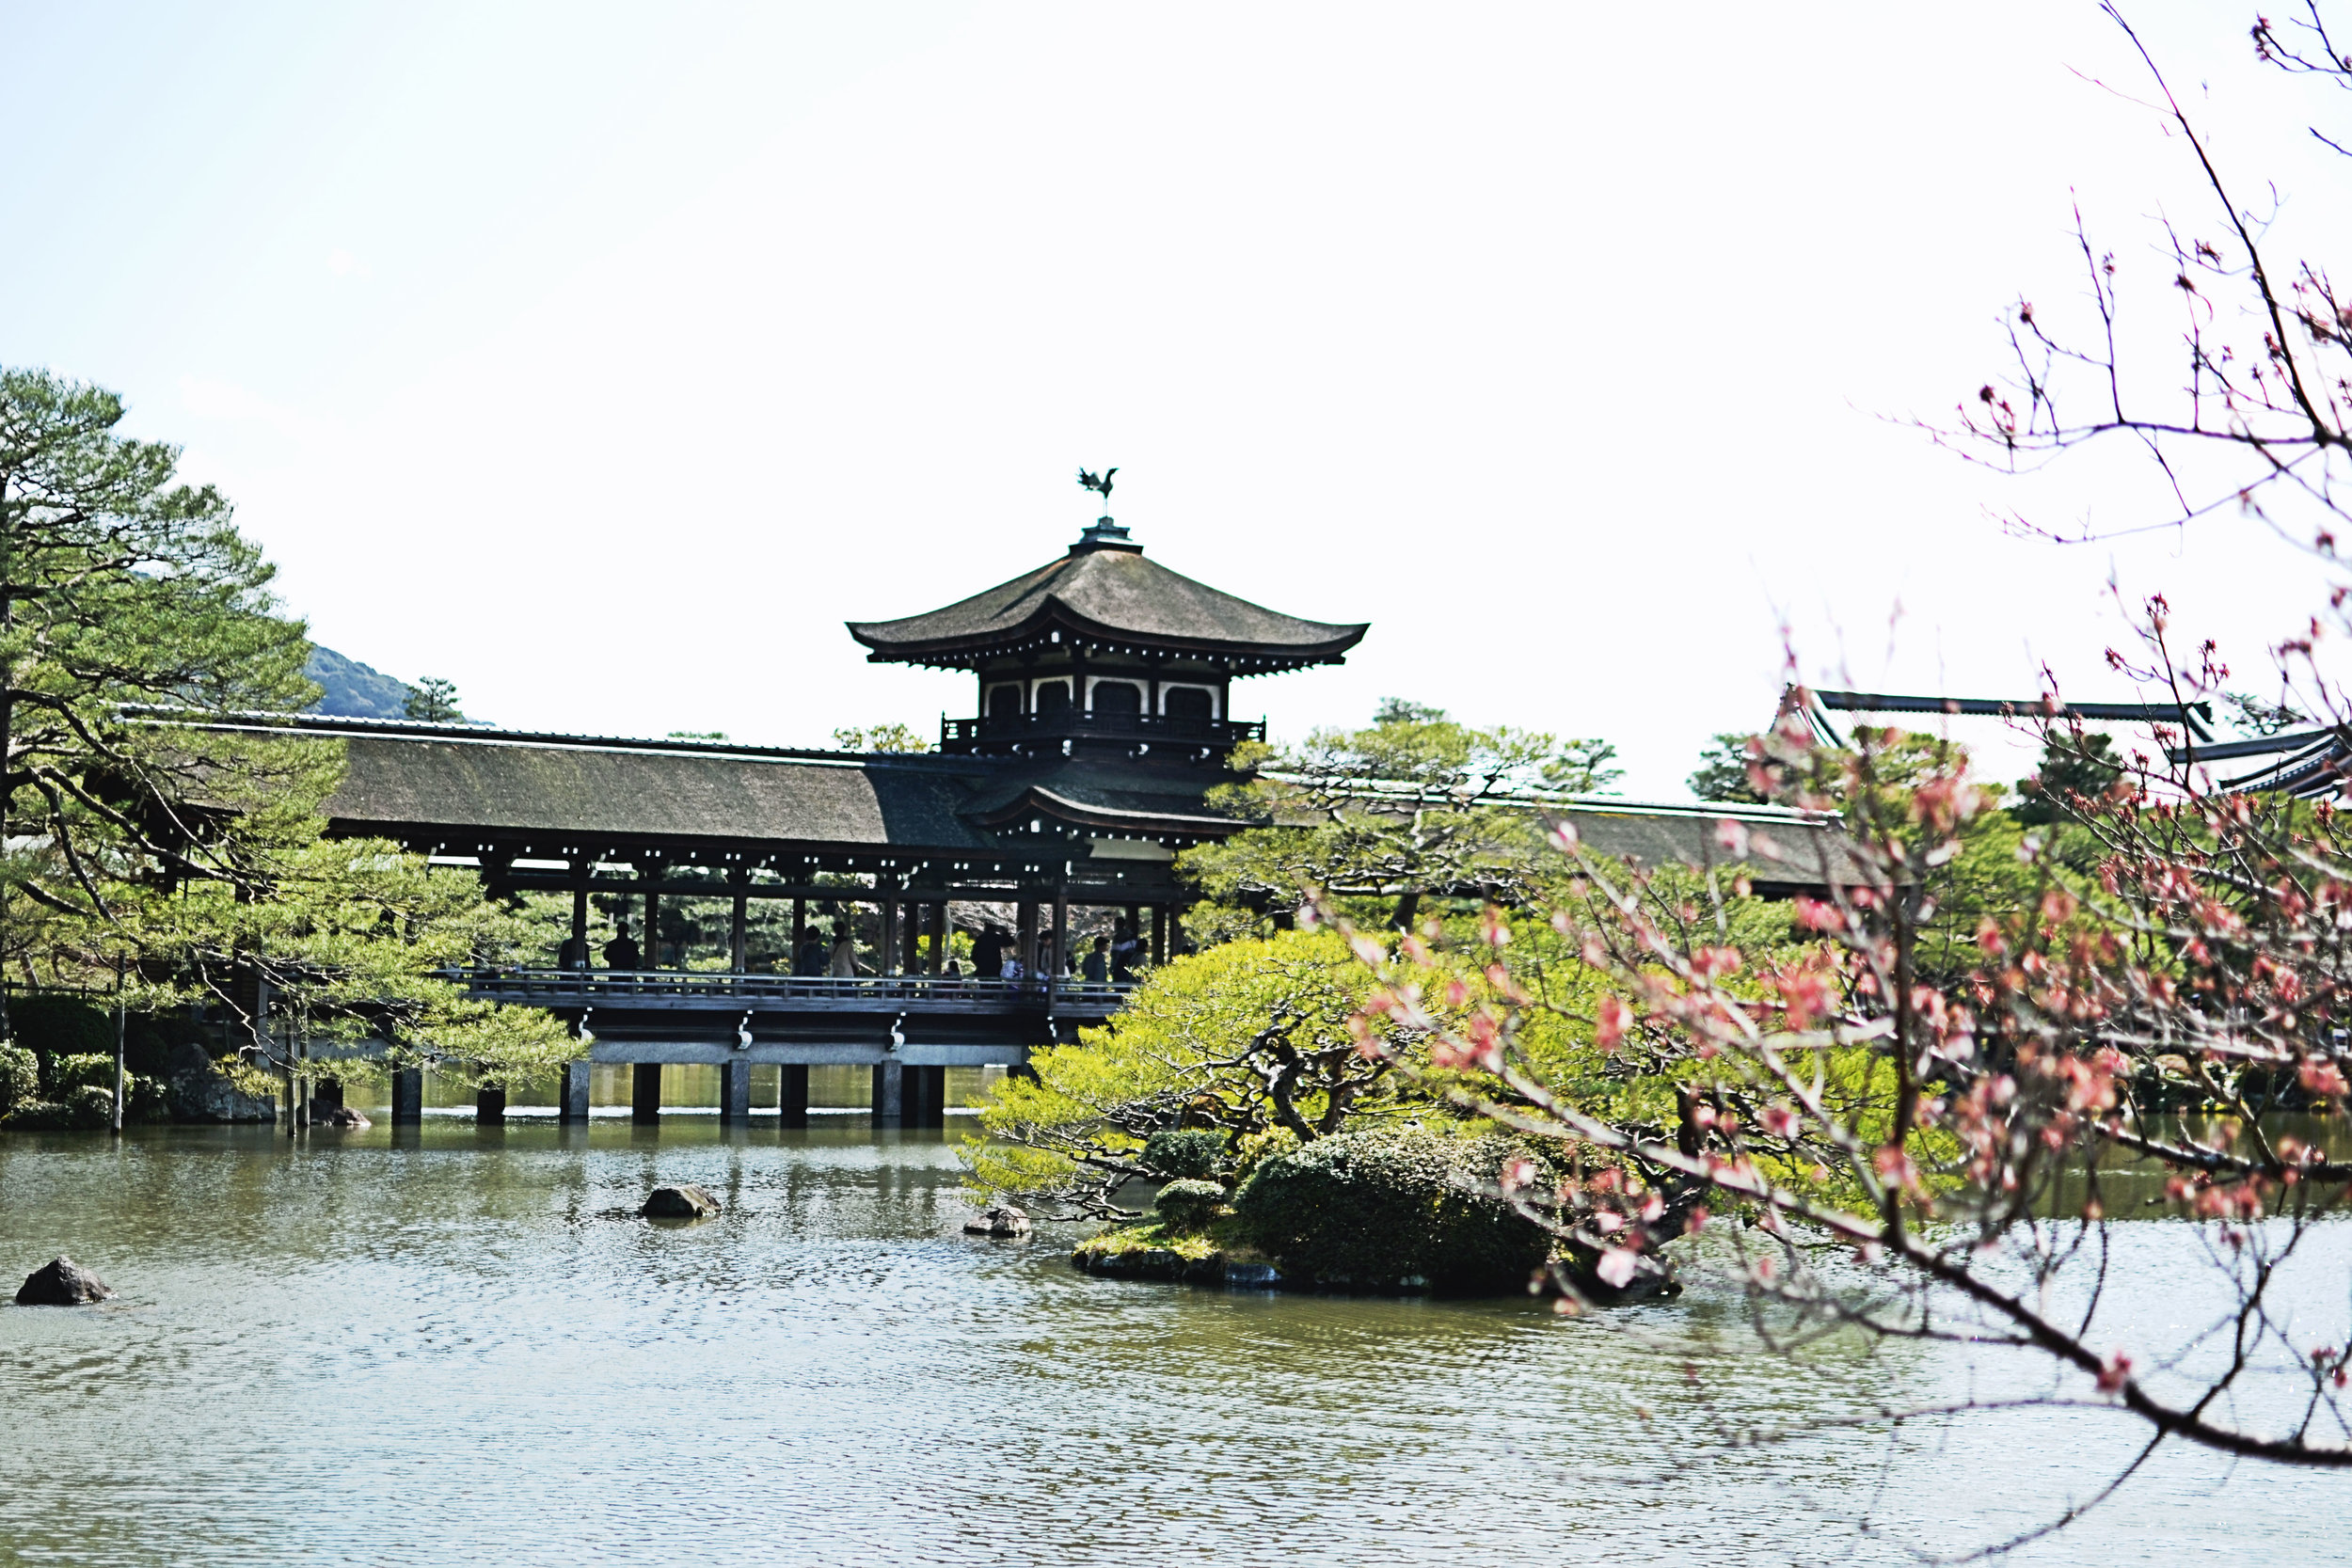 Landscape at Heian shrine in Kyoto